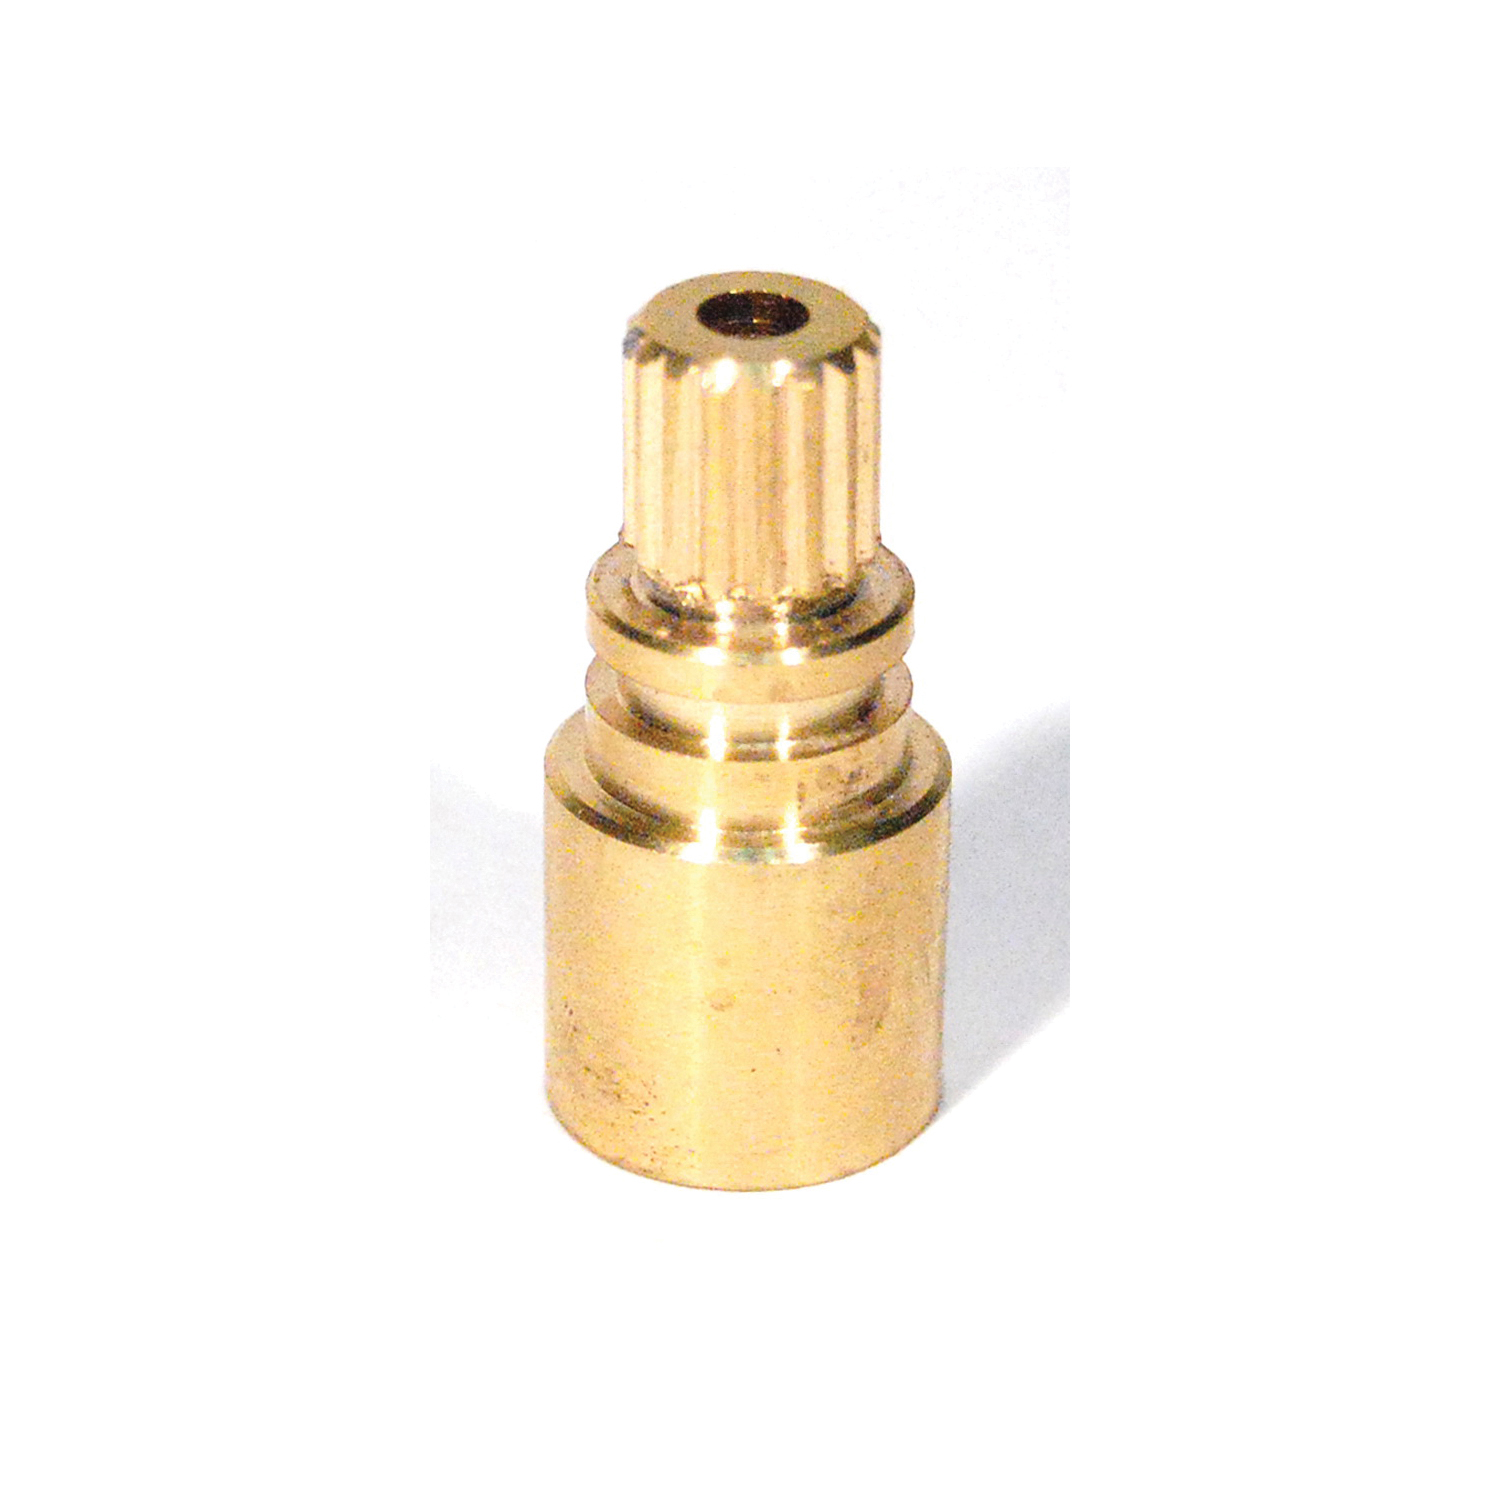 Toto® 6BU4055 Thermo Control Stem, For Use With: TSTA/TSTD Thermostatic Mixing Valve